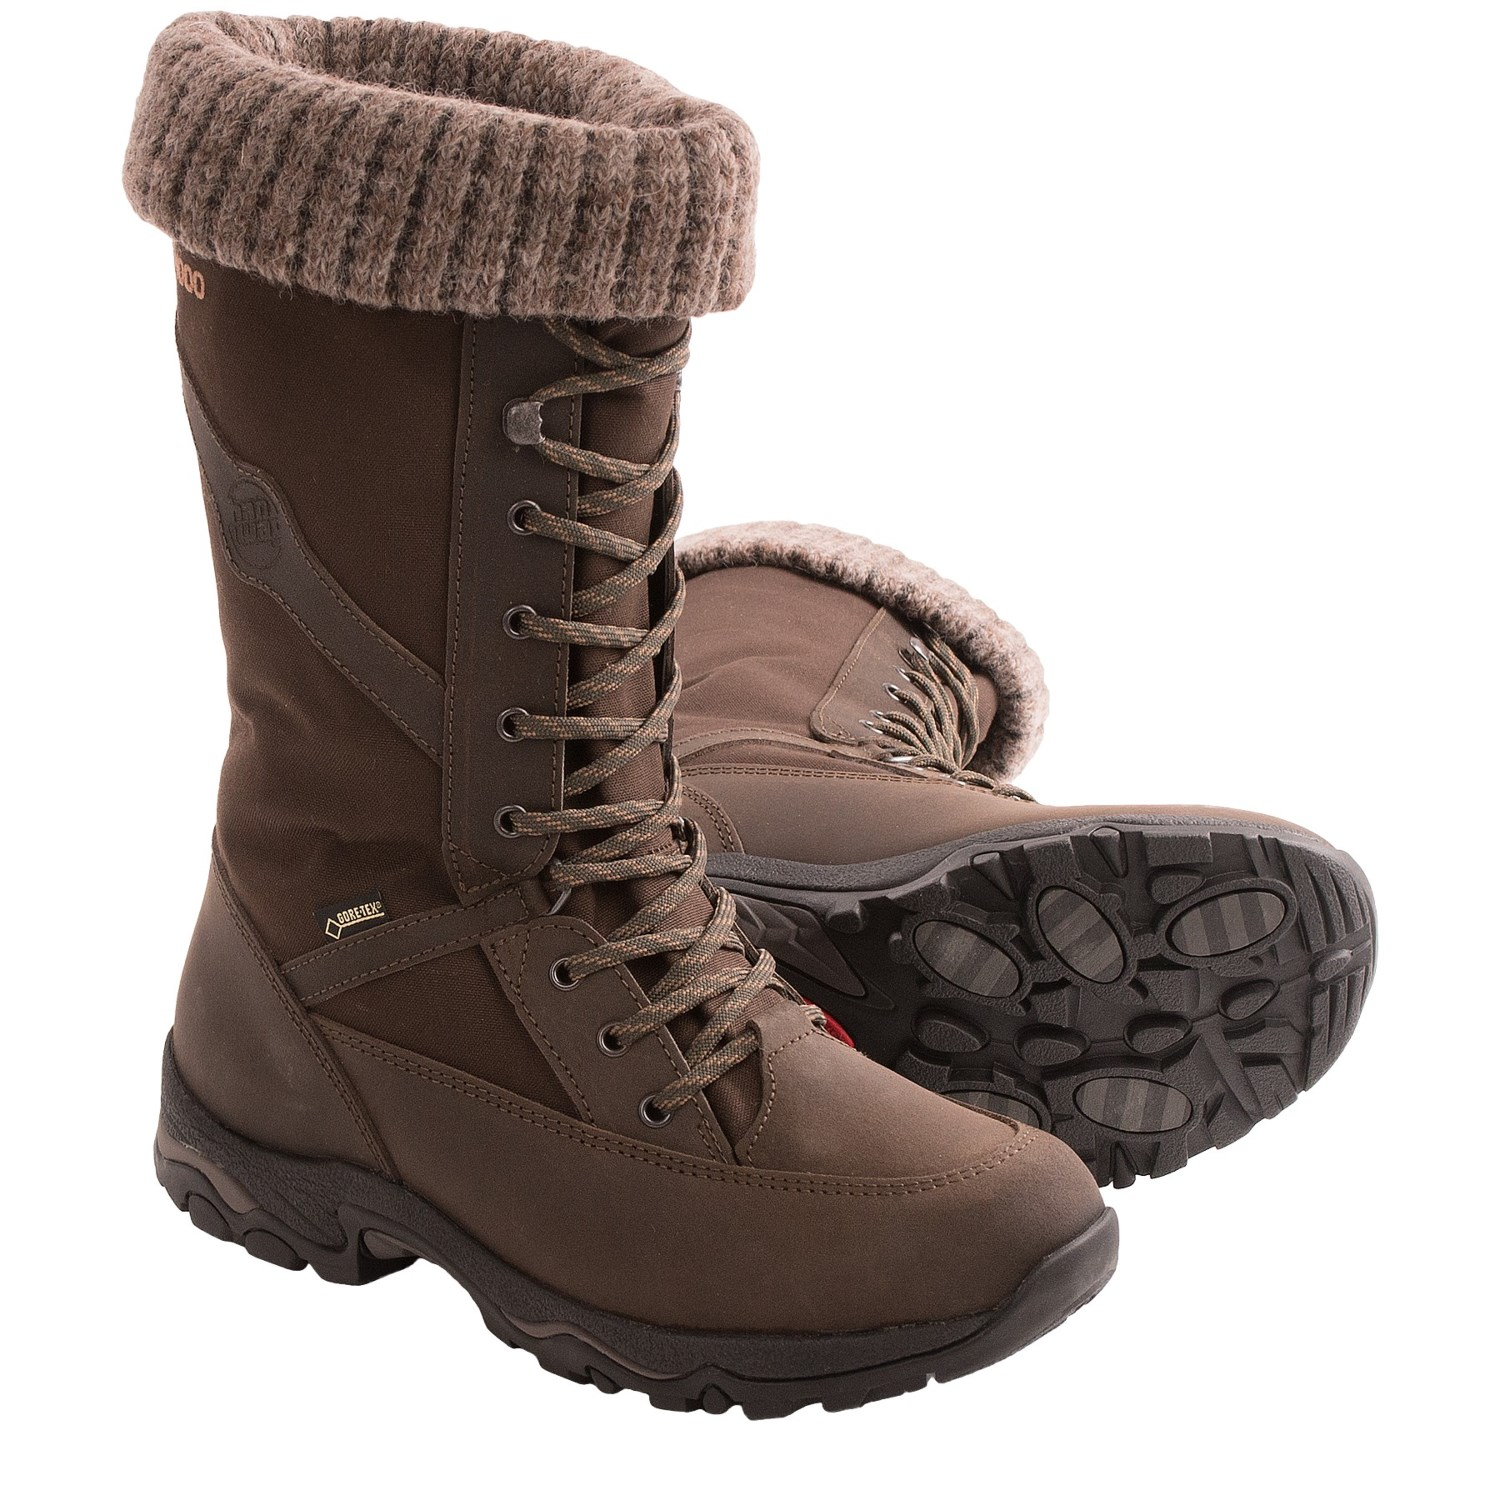 Original Lowa Brenta GoreTex Winter Boots  Waterproof Insulated For Women